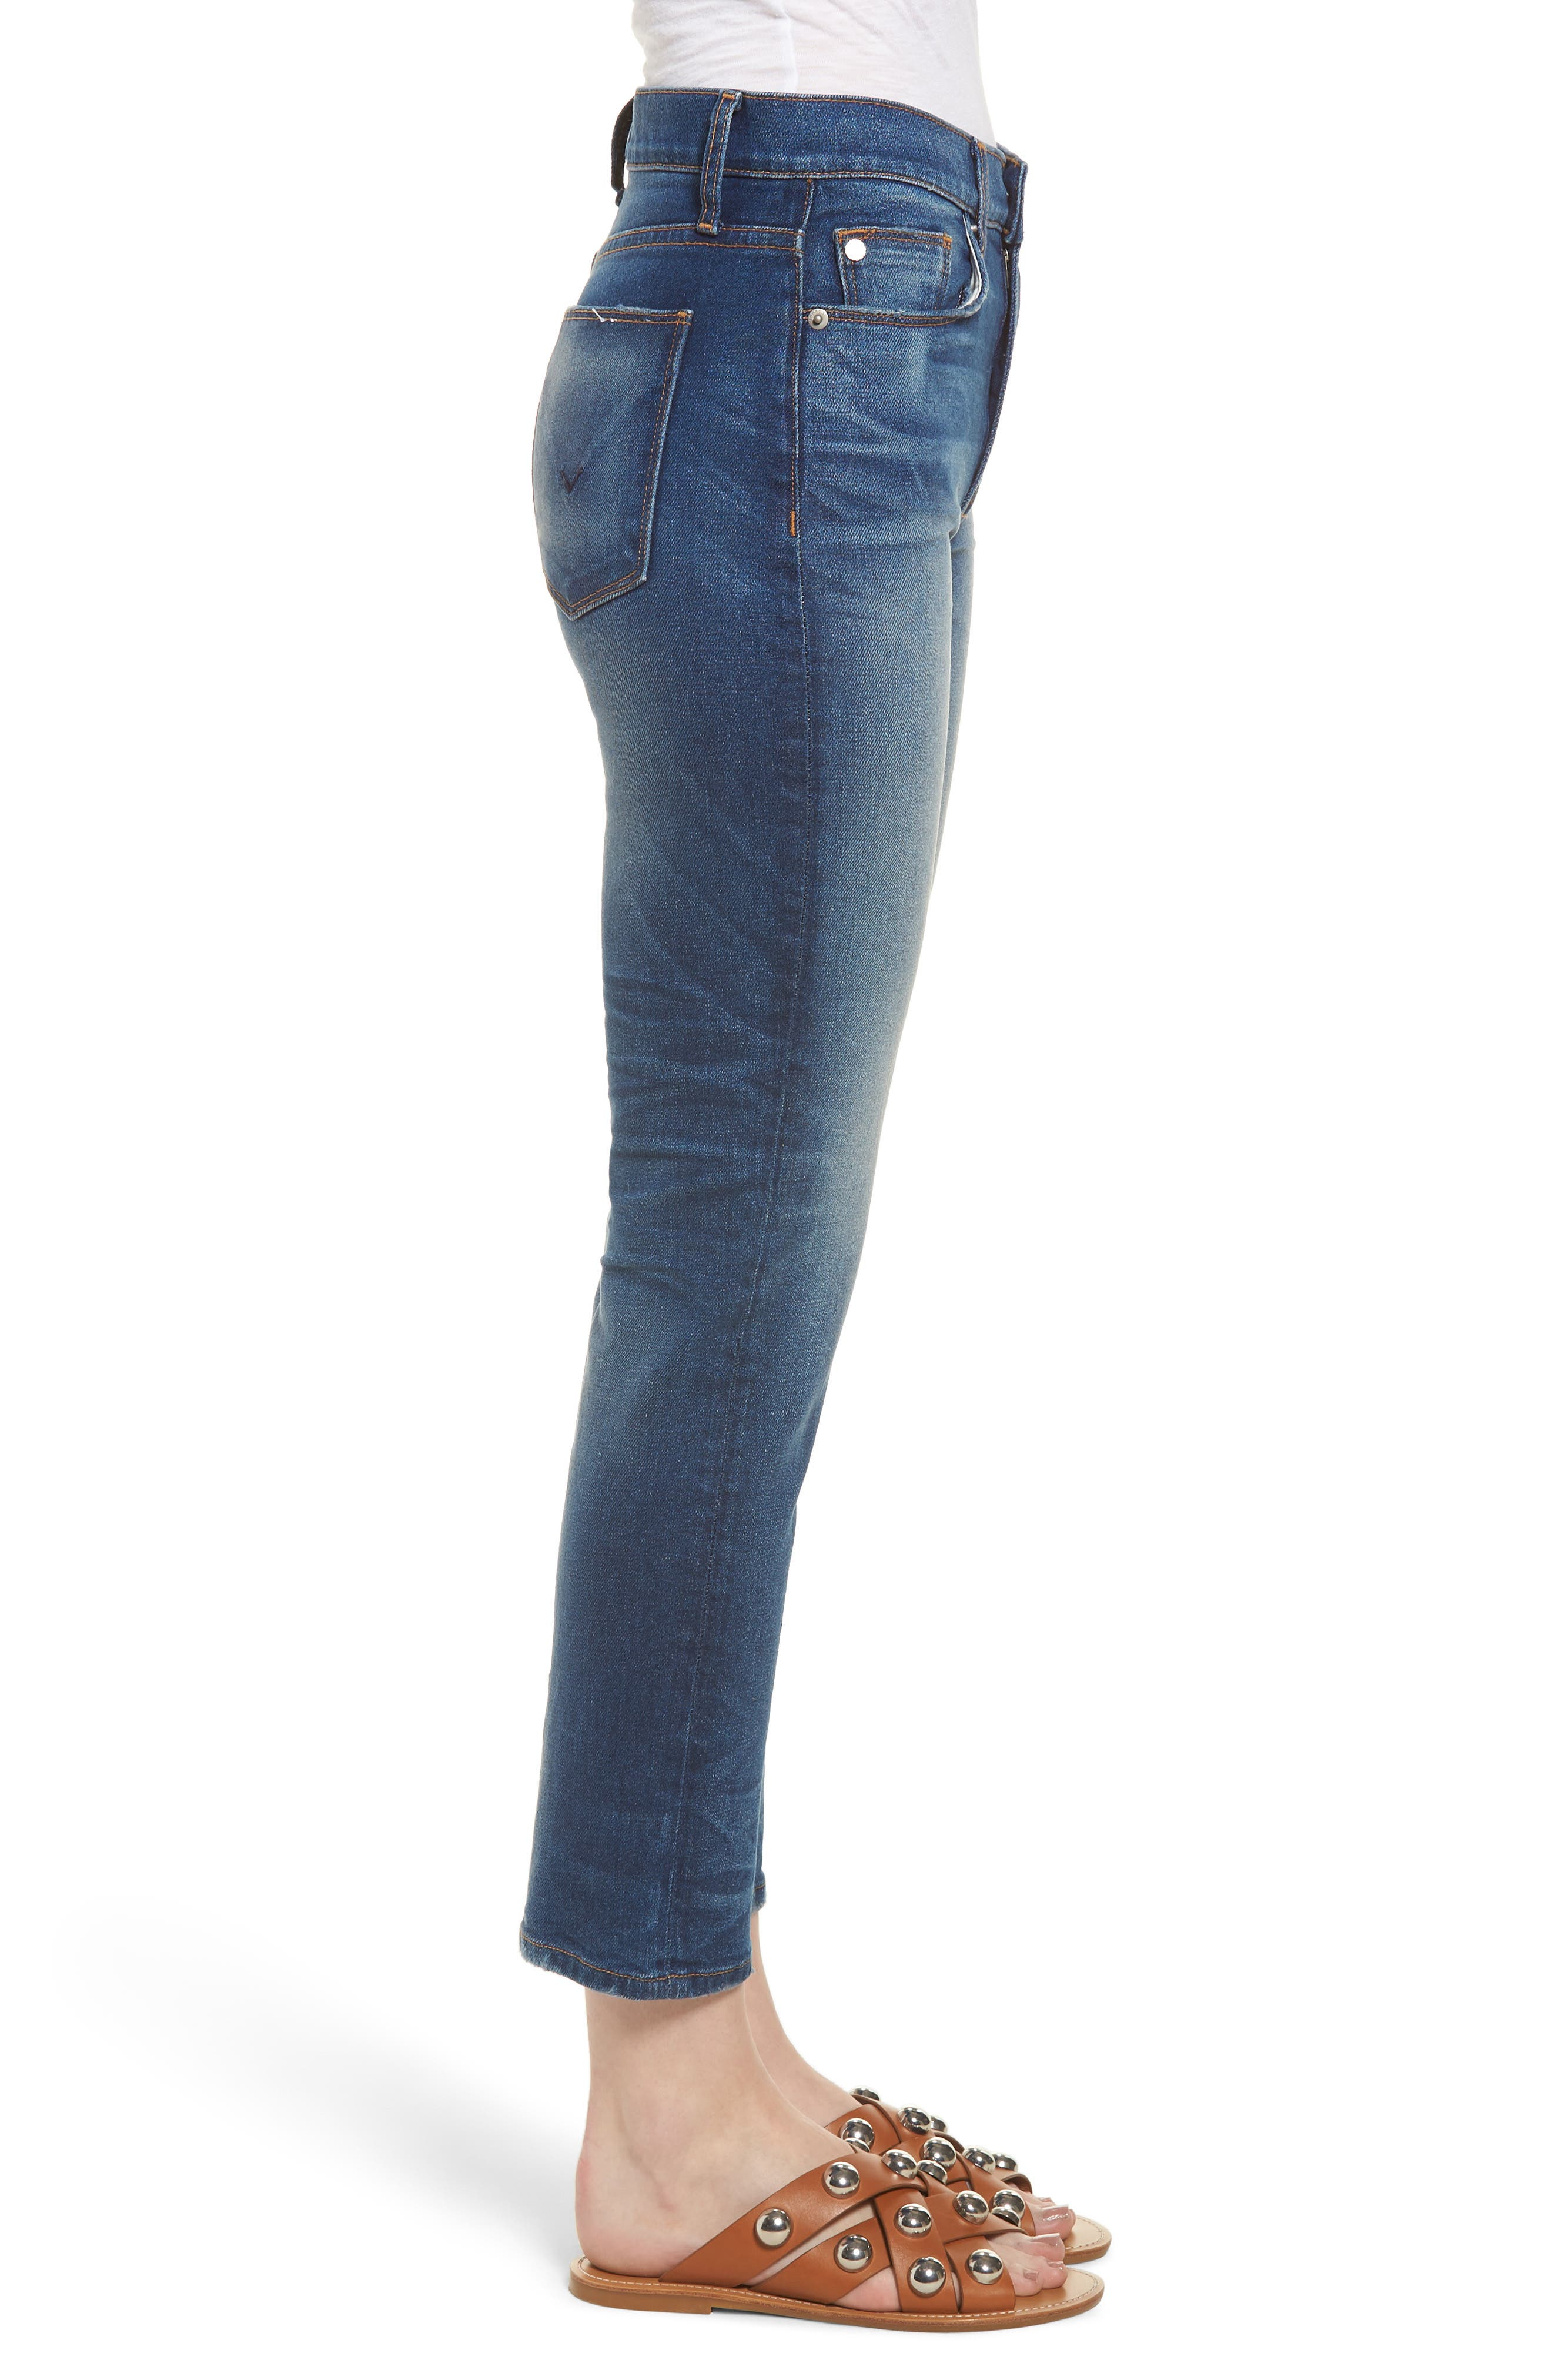 Zoeey High Waist Crop Straight Leg Jeans,                             Alternate thumbnail 3, color,                             Undenied